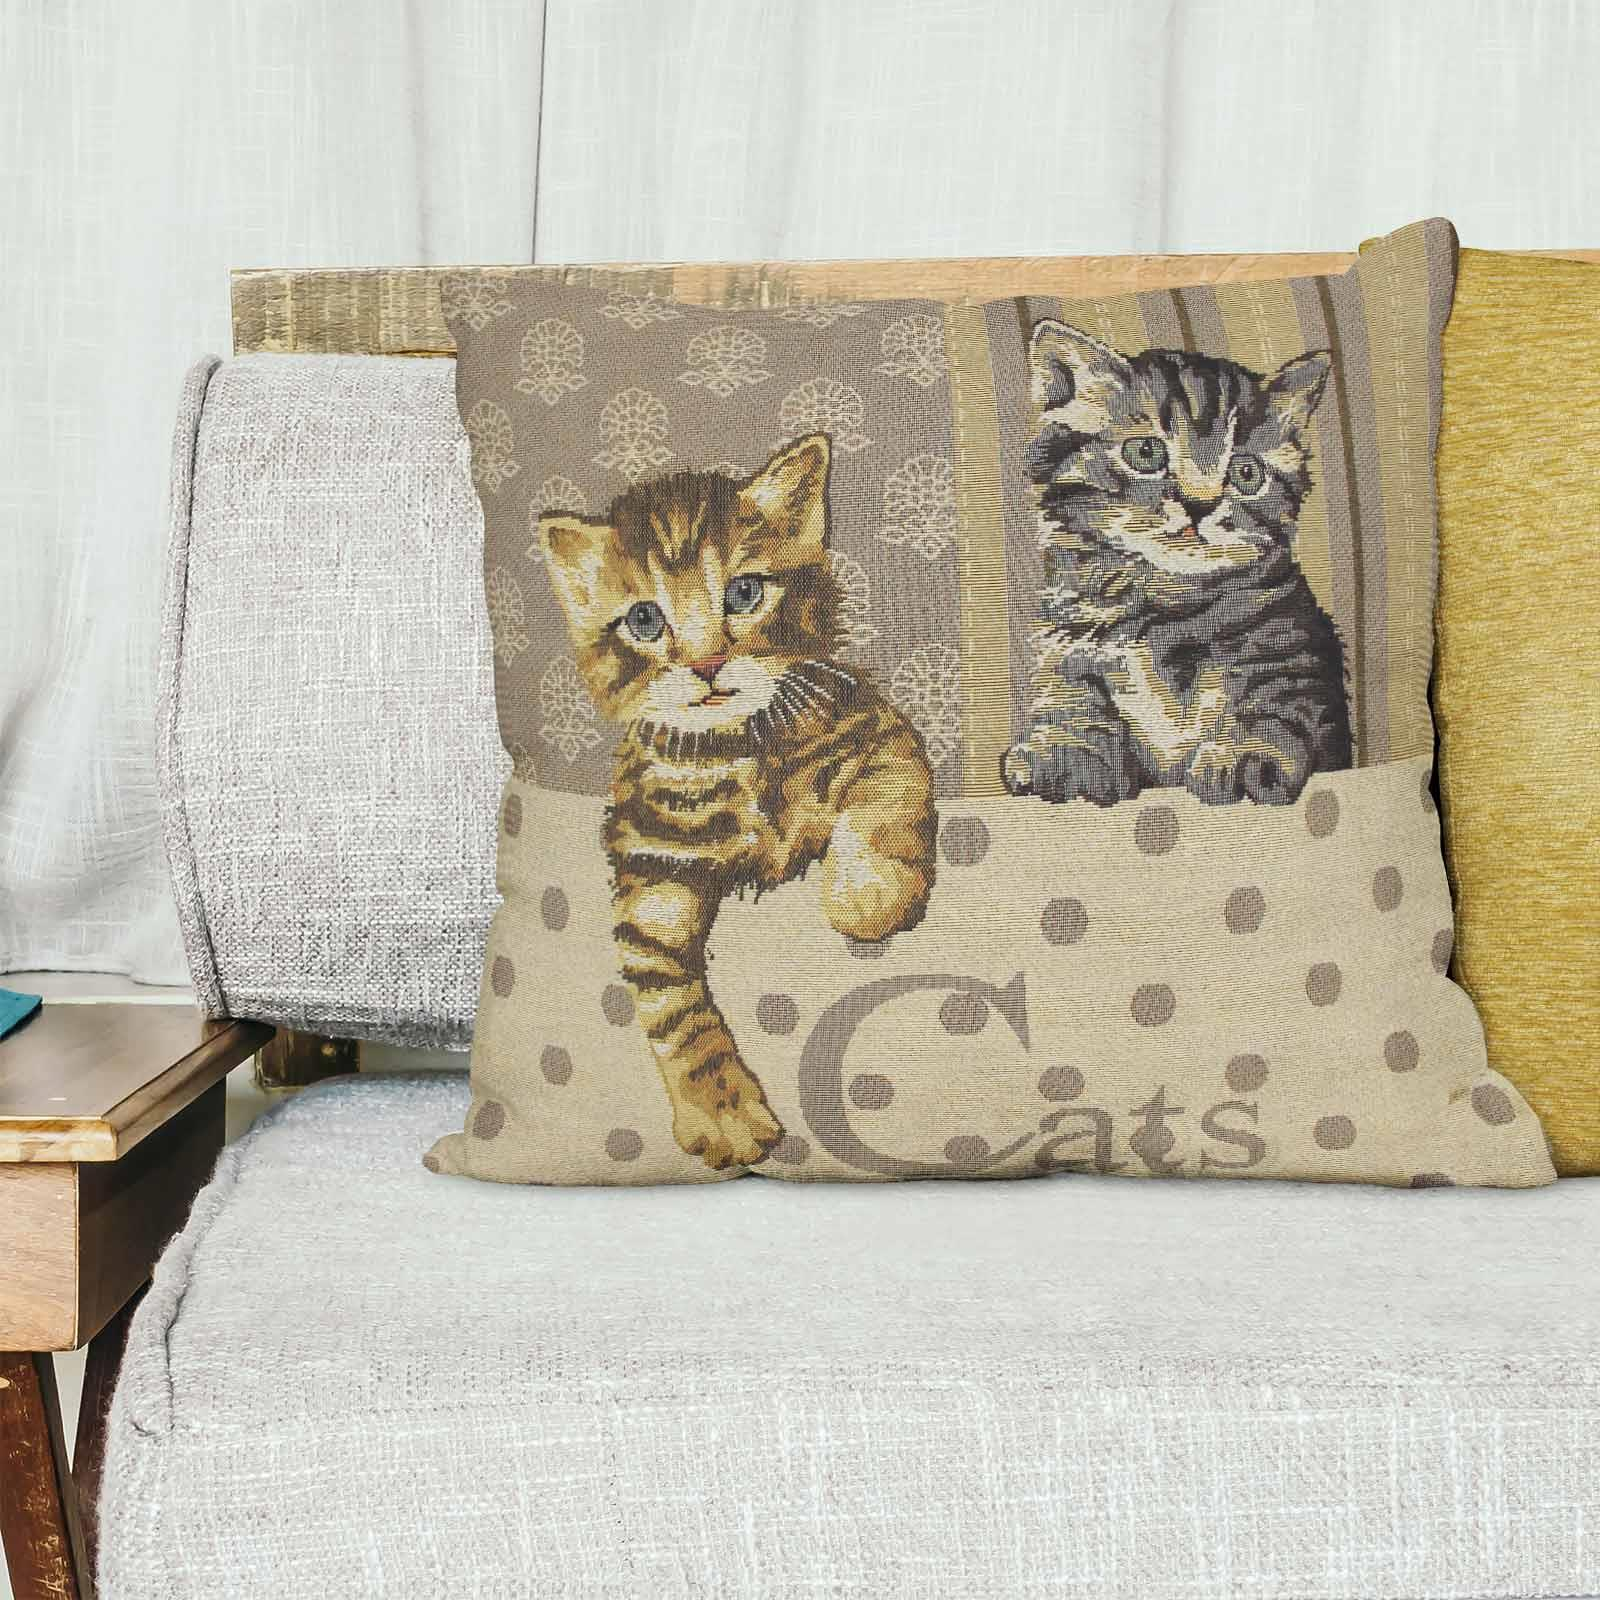 Tapestry-Cushion-Covers-Vintage-Pillow-Cover-Collection-18-034-45cm-Filled-Cushions thumbnail 21